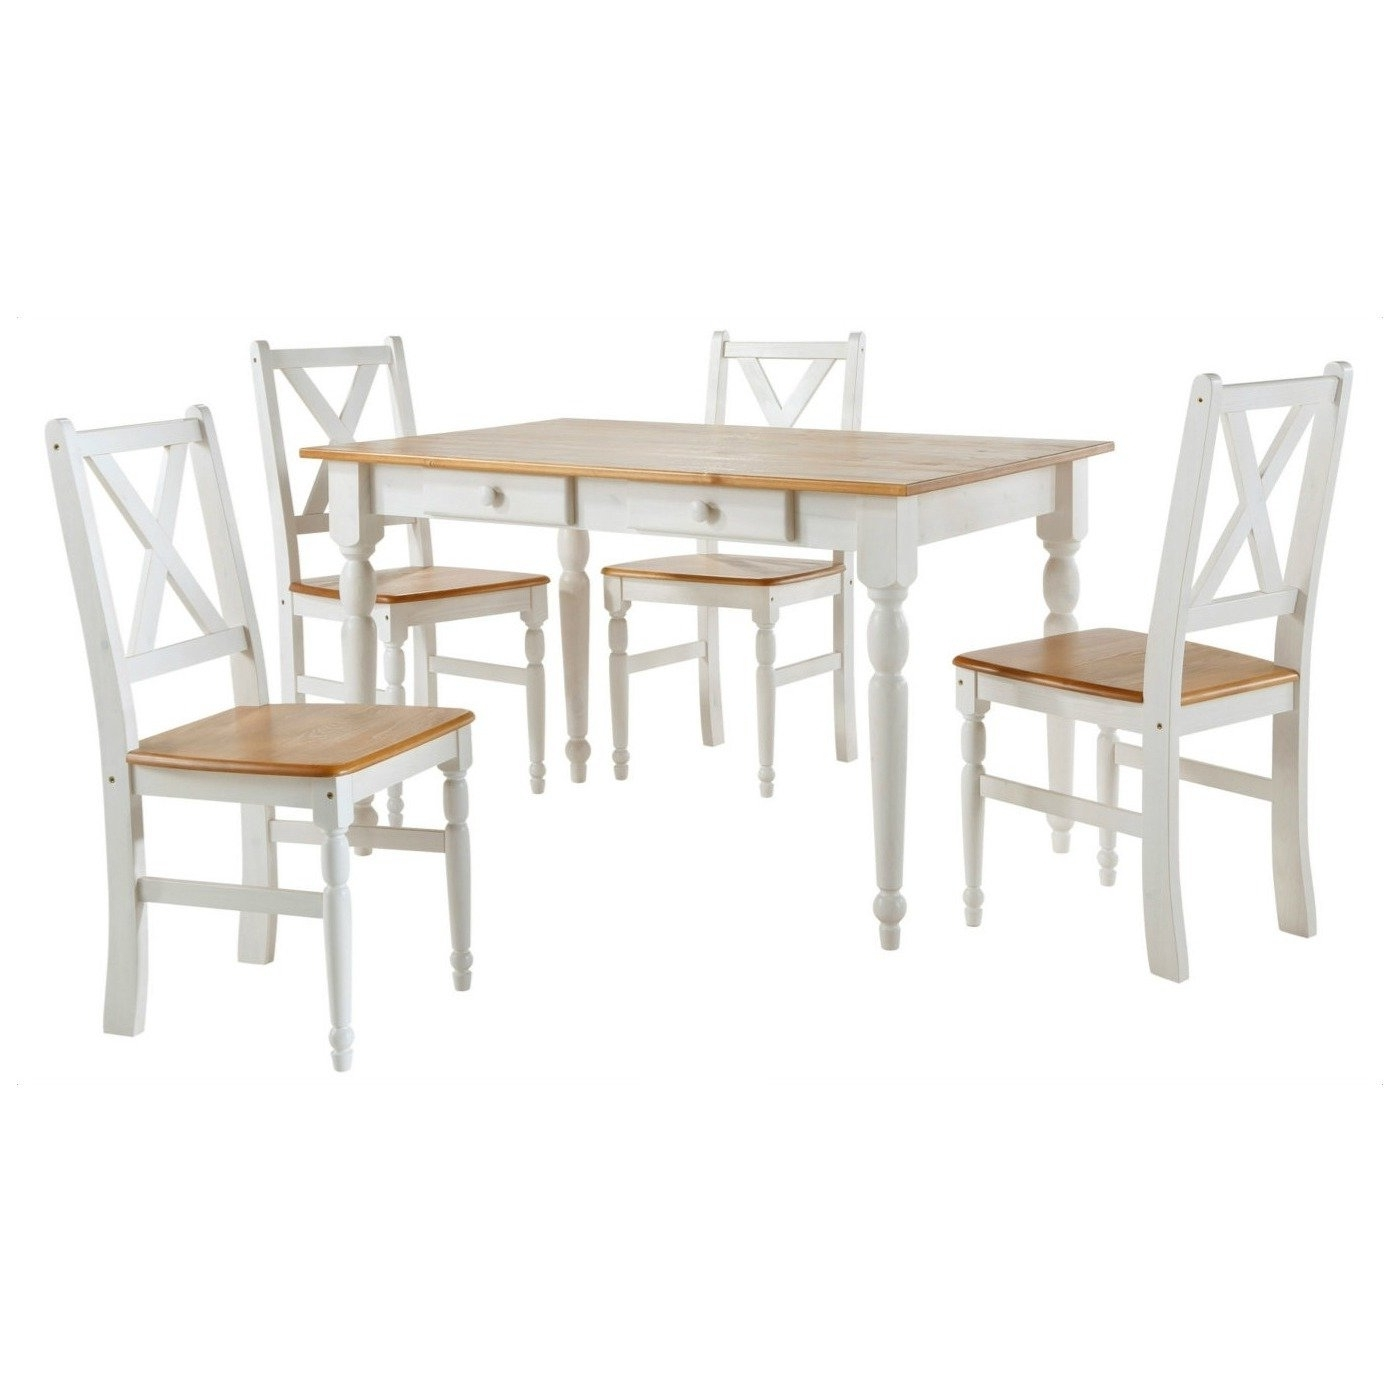 Noah Dining Tables For Newest Shop Scandinavian Lifestyle Noah Dining Table With Drawers – Free (View 17 of 25)